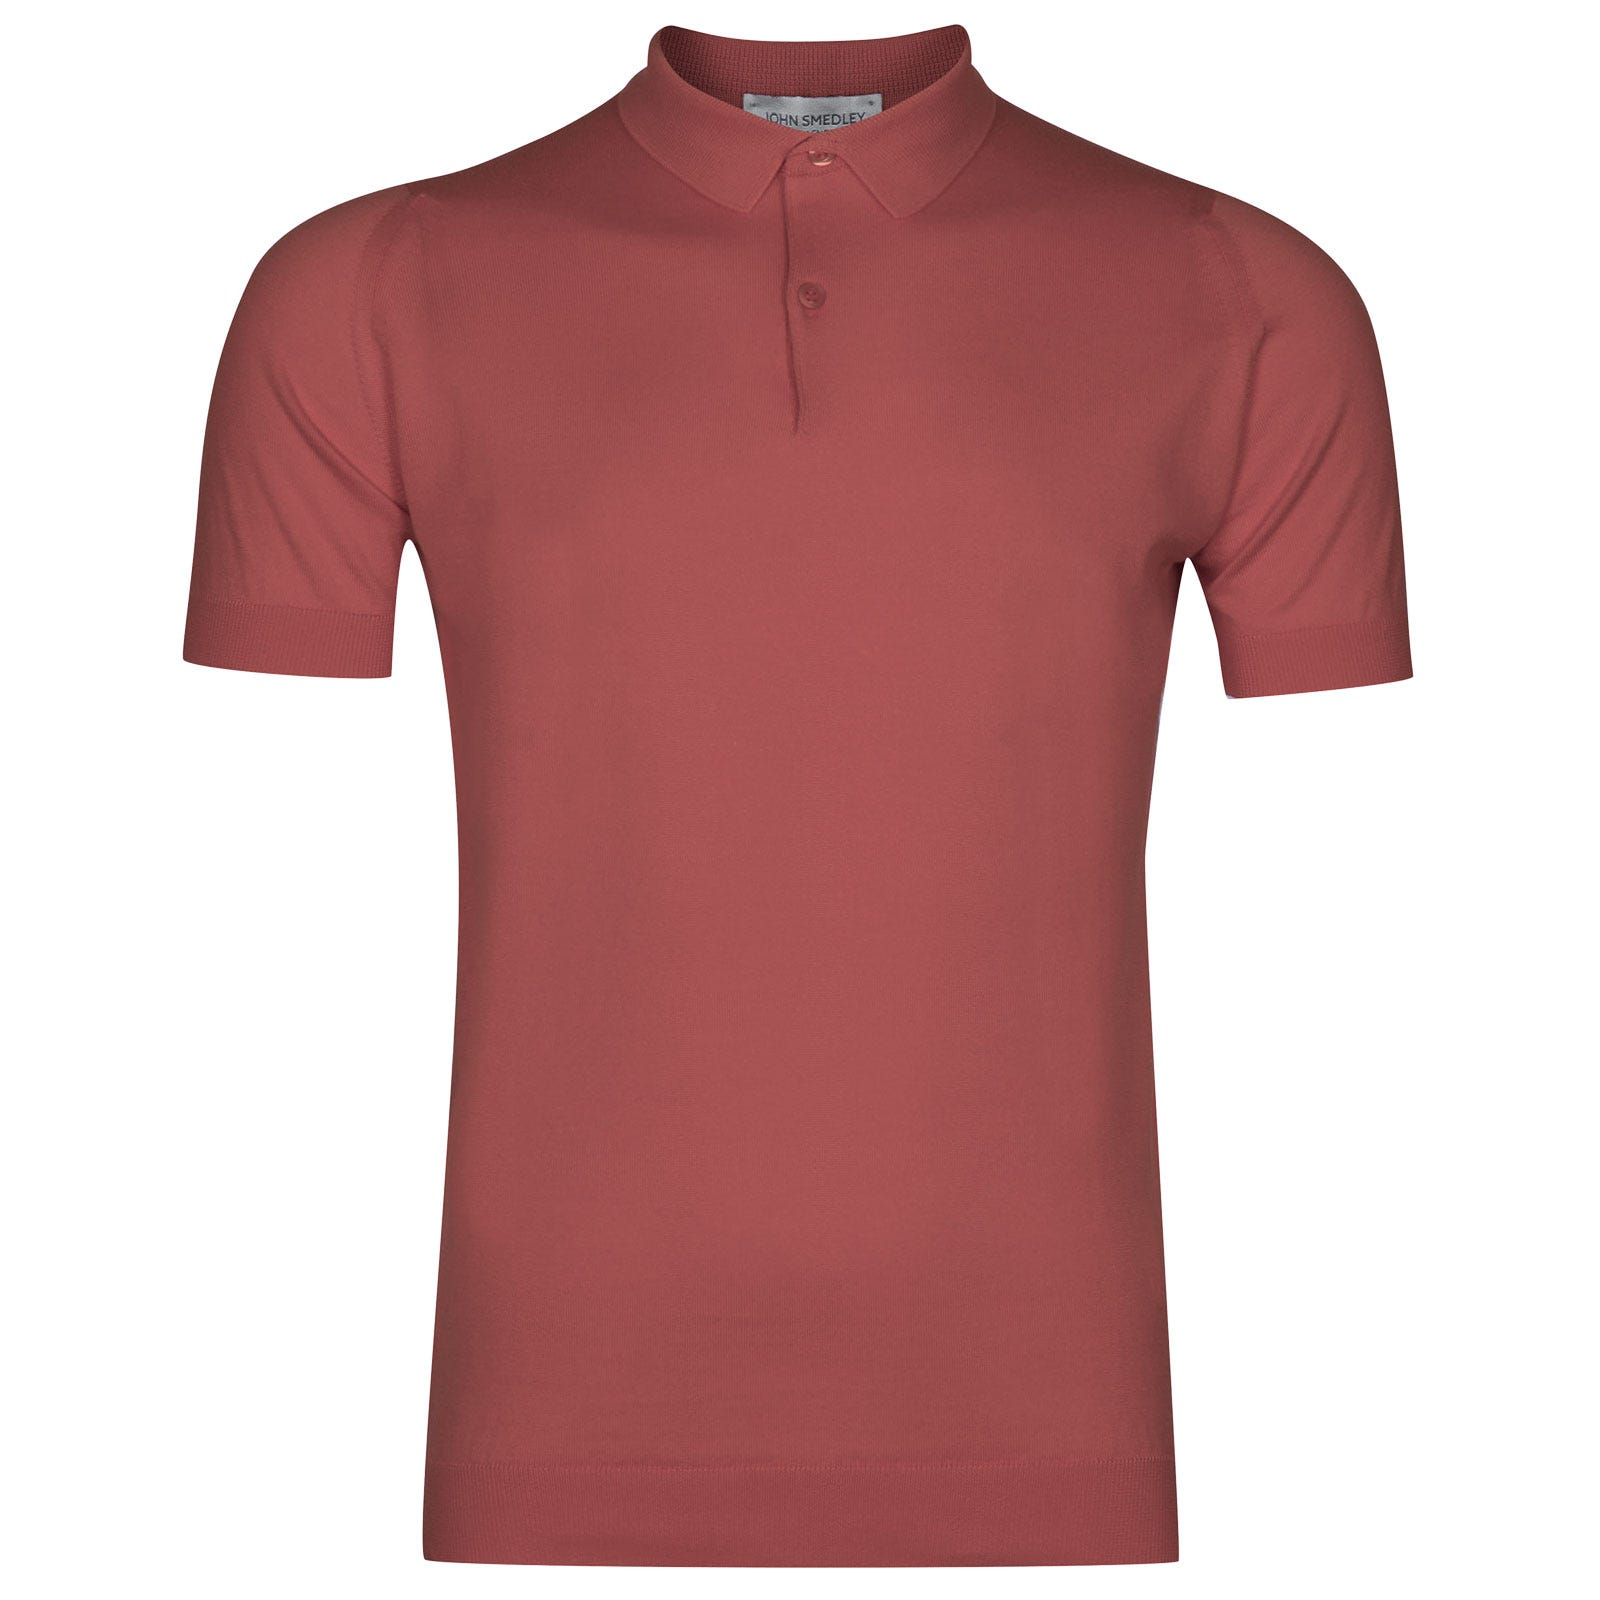 John Smedley rhodes Sea Island Cotton Shirt in Stanton Pink-XXL